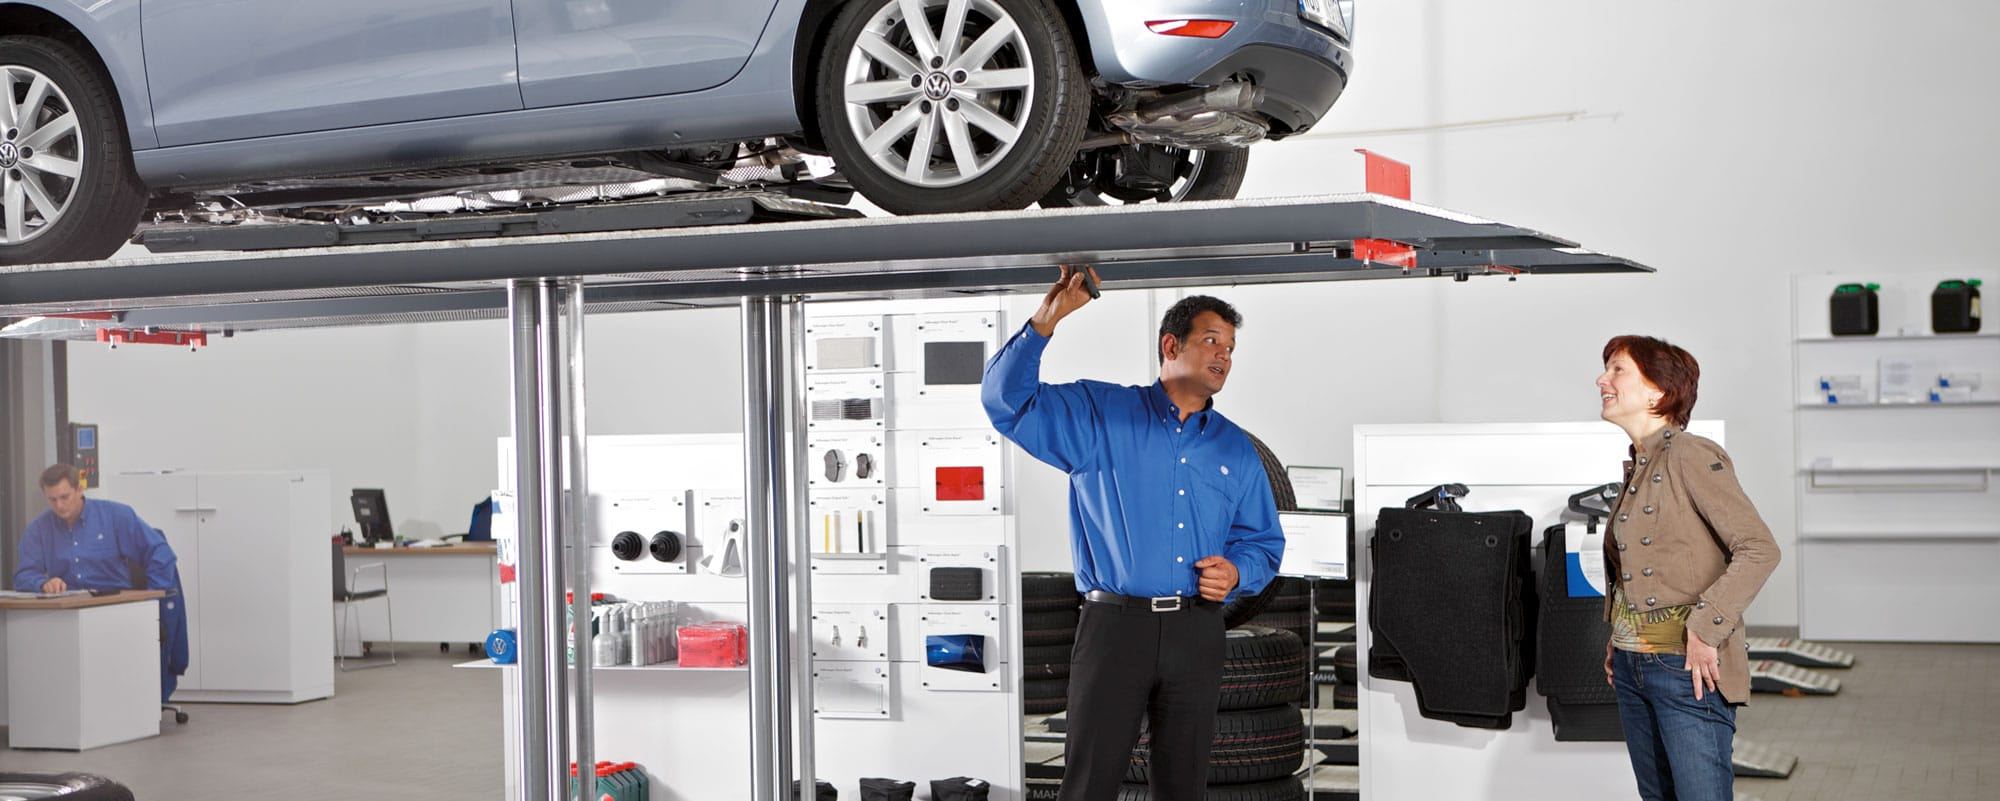 Vehicle Inspection – EN